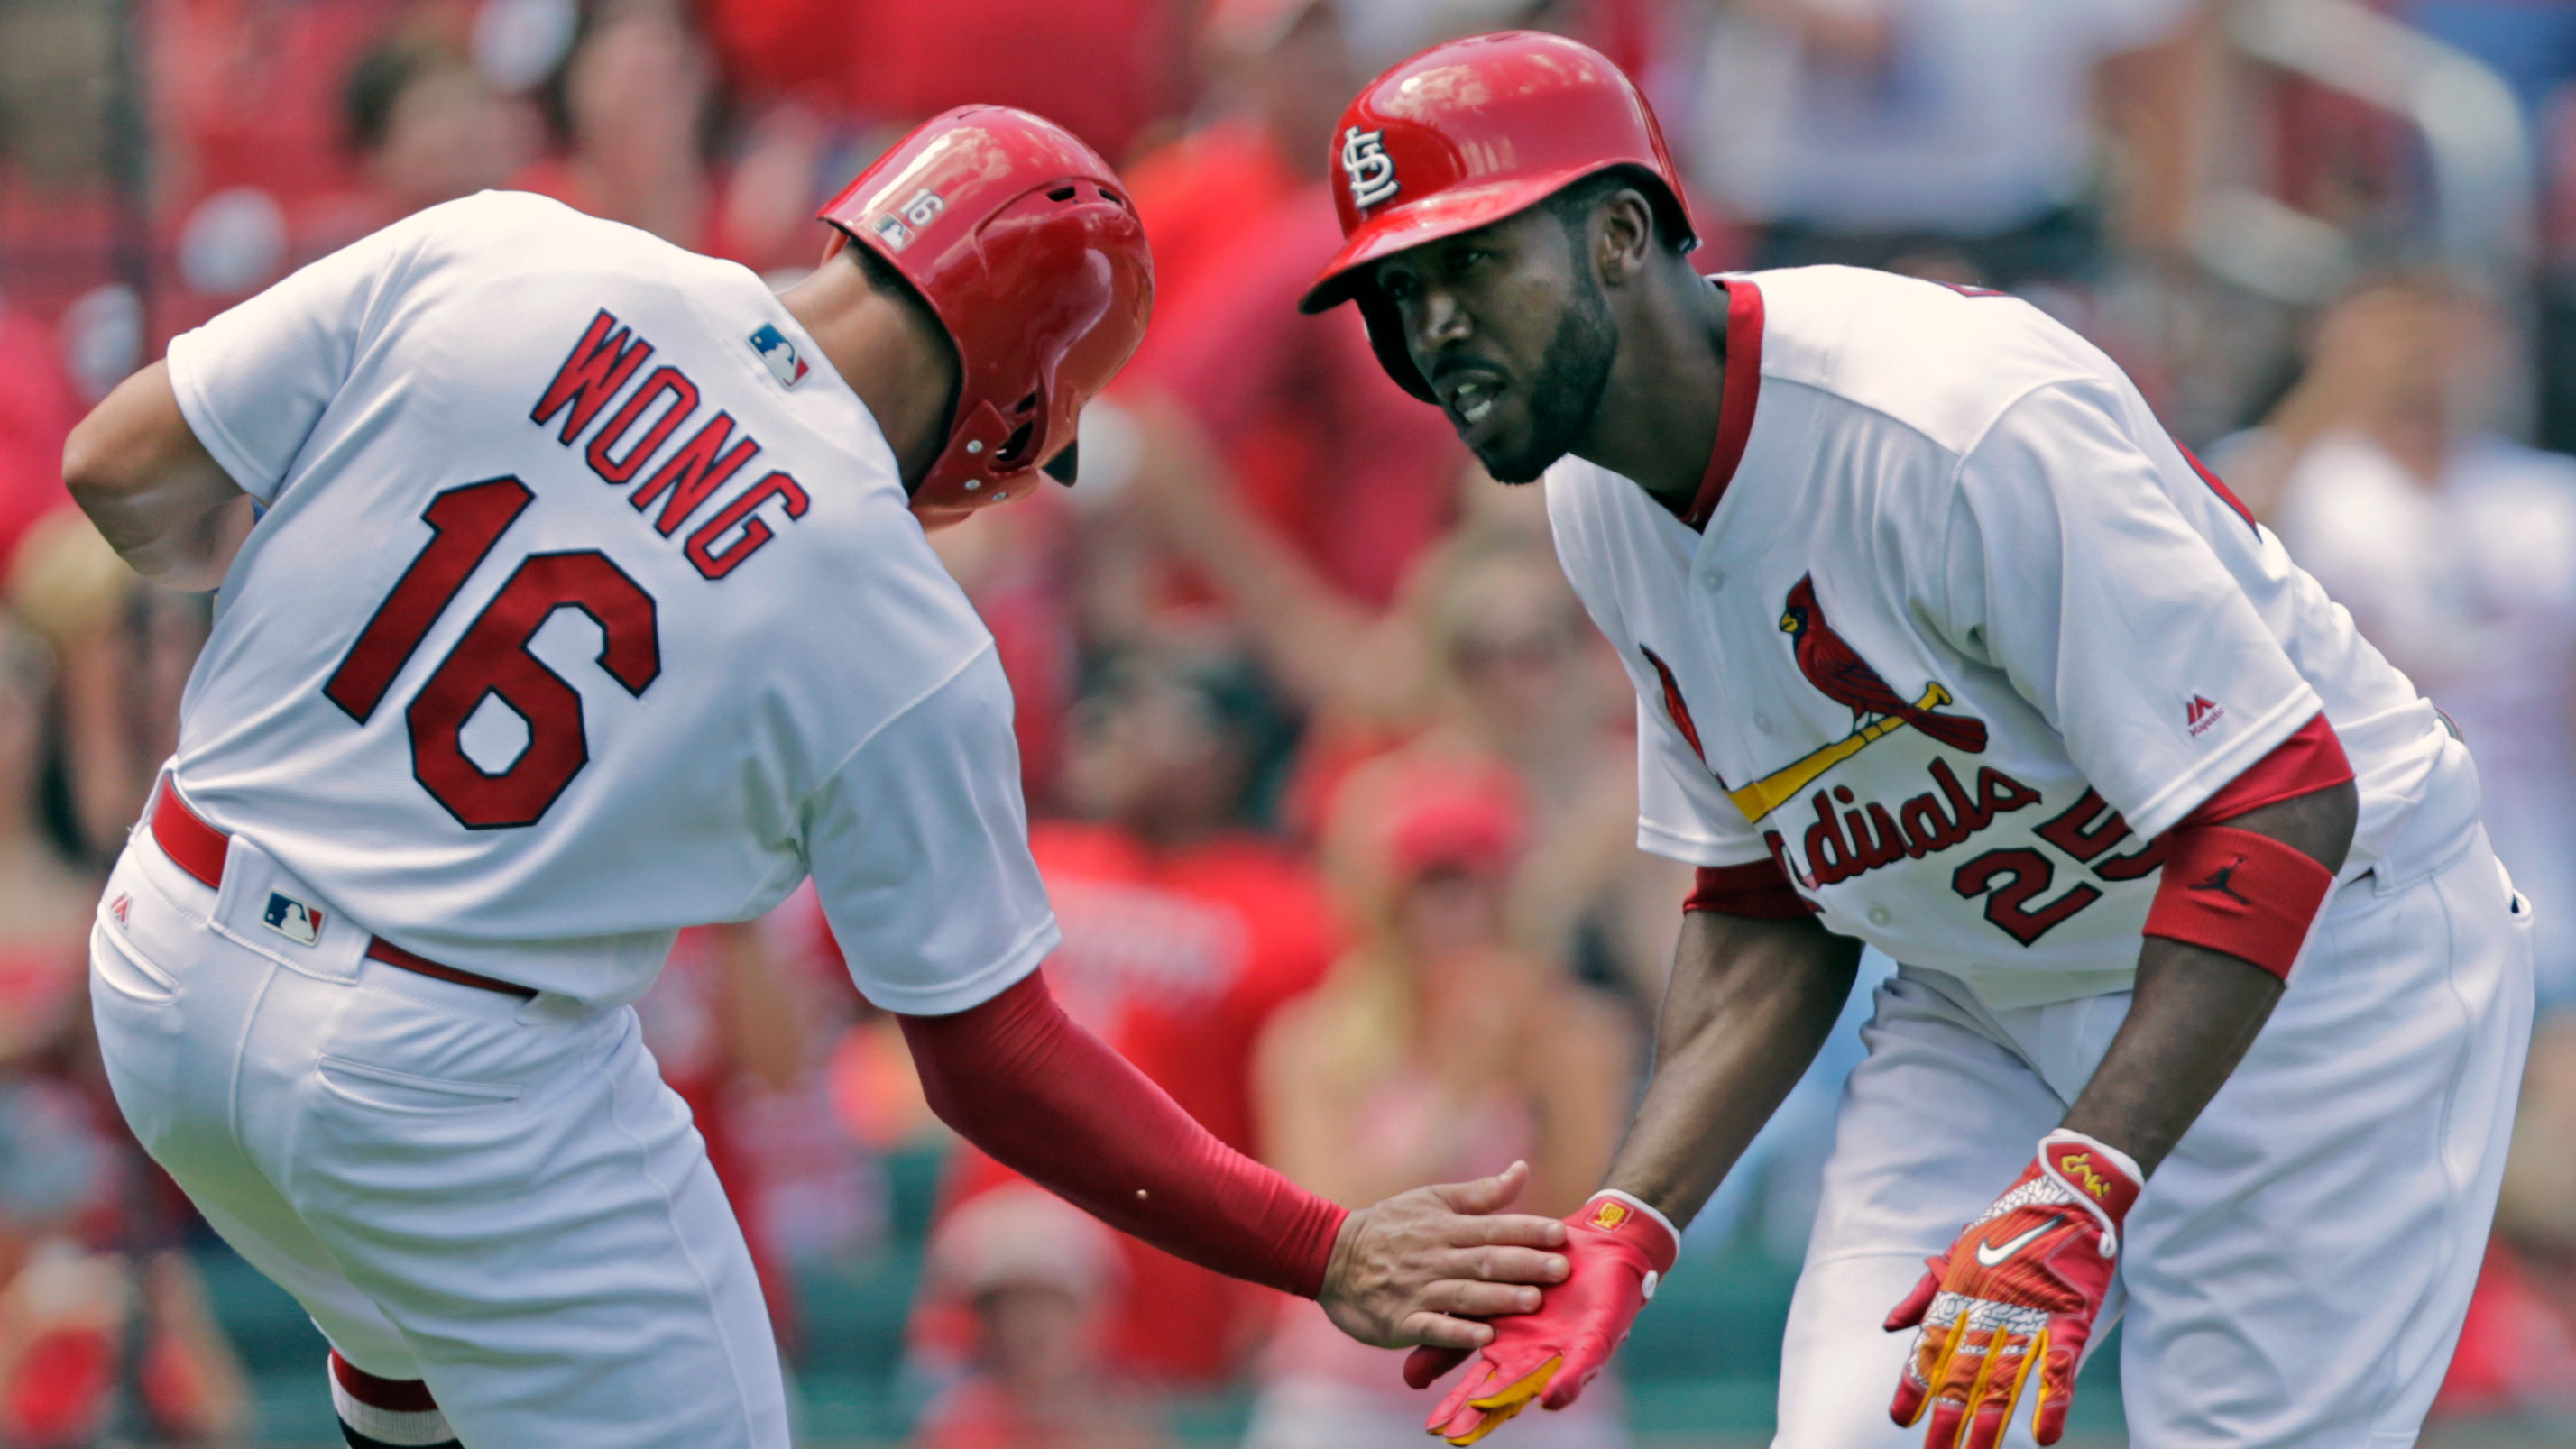 Cardinals place Fowler on DL with fractured foot, activate Wong